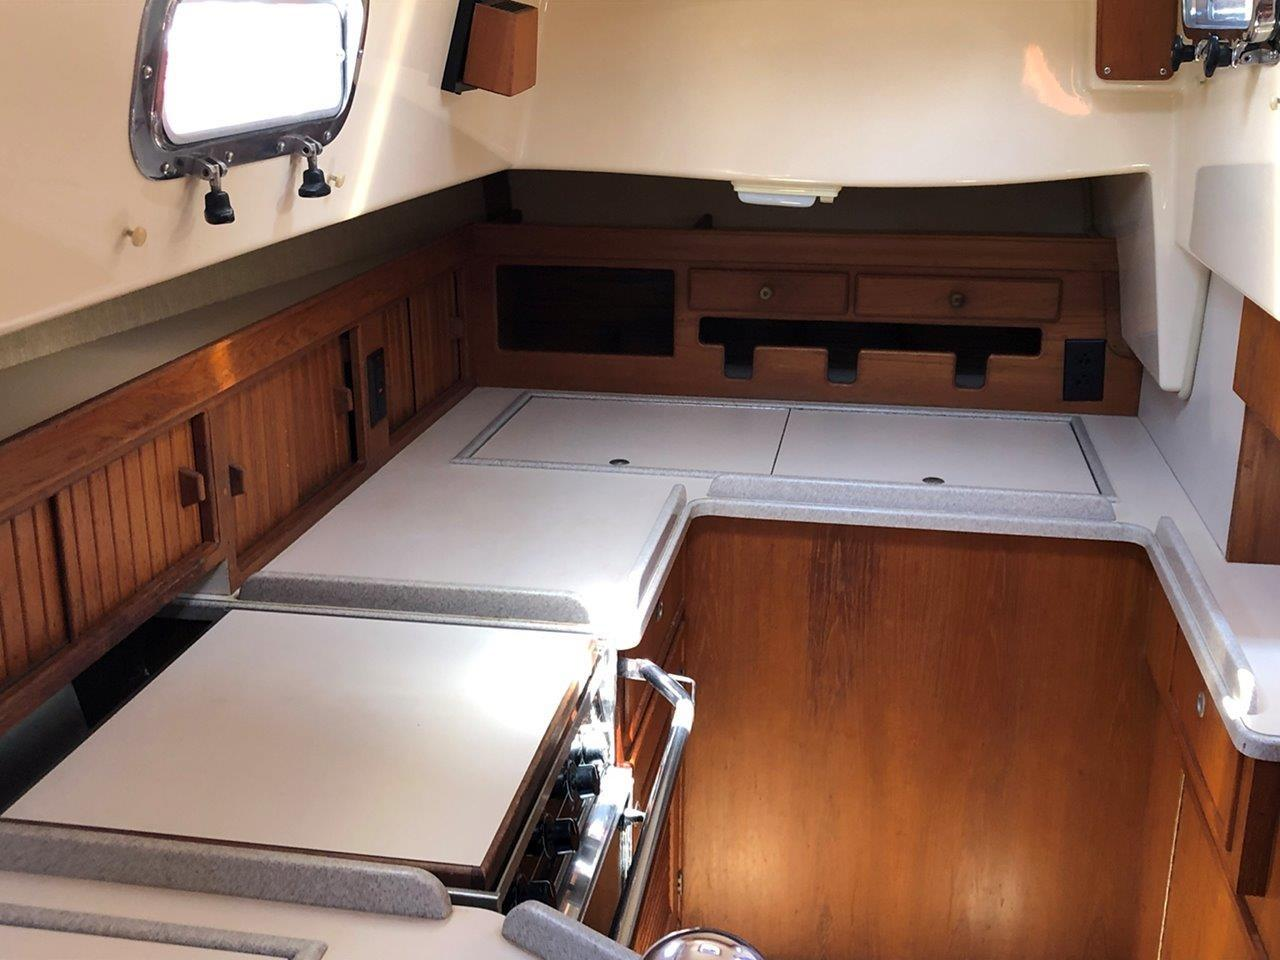 Galley counter, top-loading refrigerator and freezer